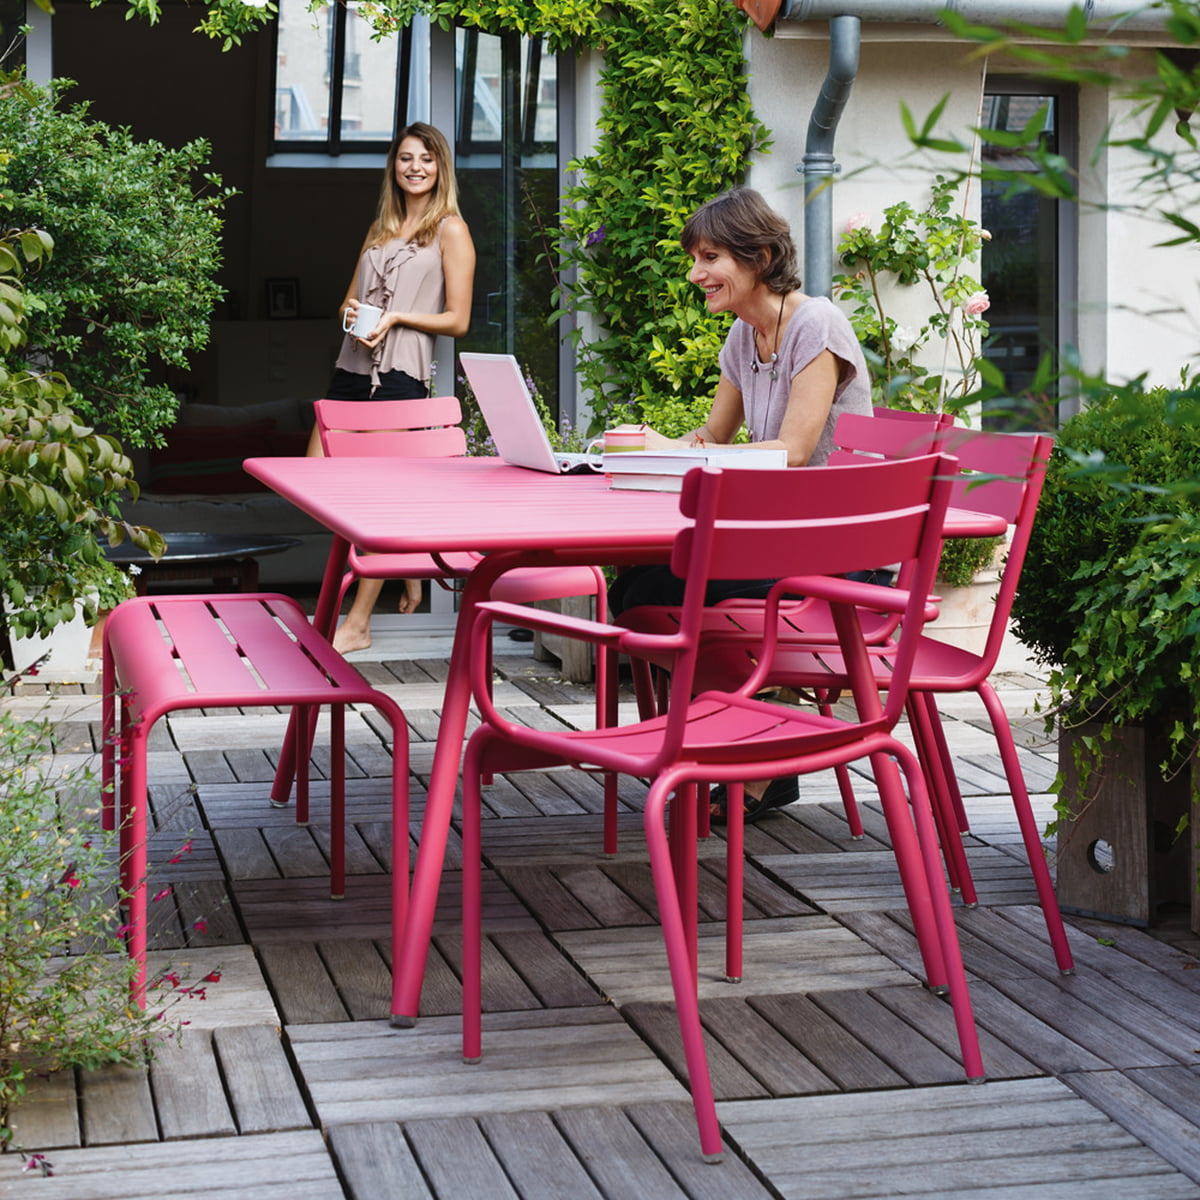 Luxembourg garden chair fermob shop for Stuhl design bilder